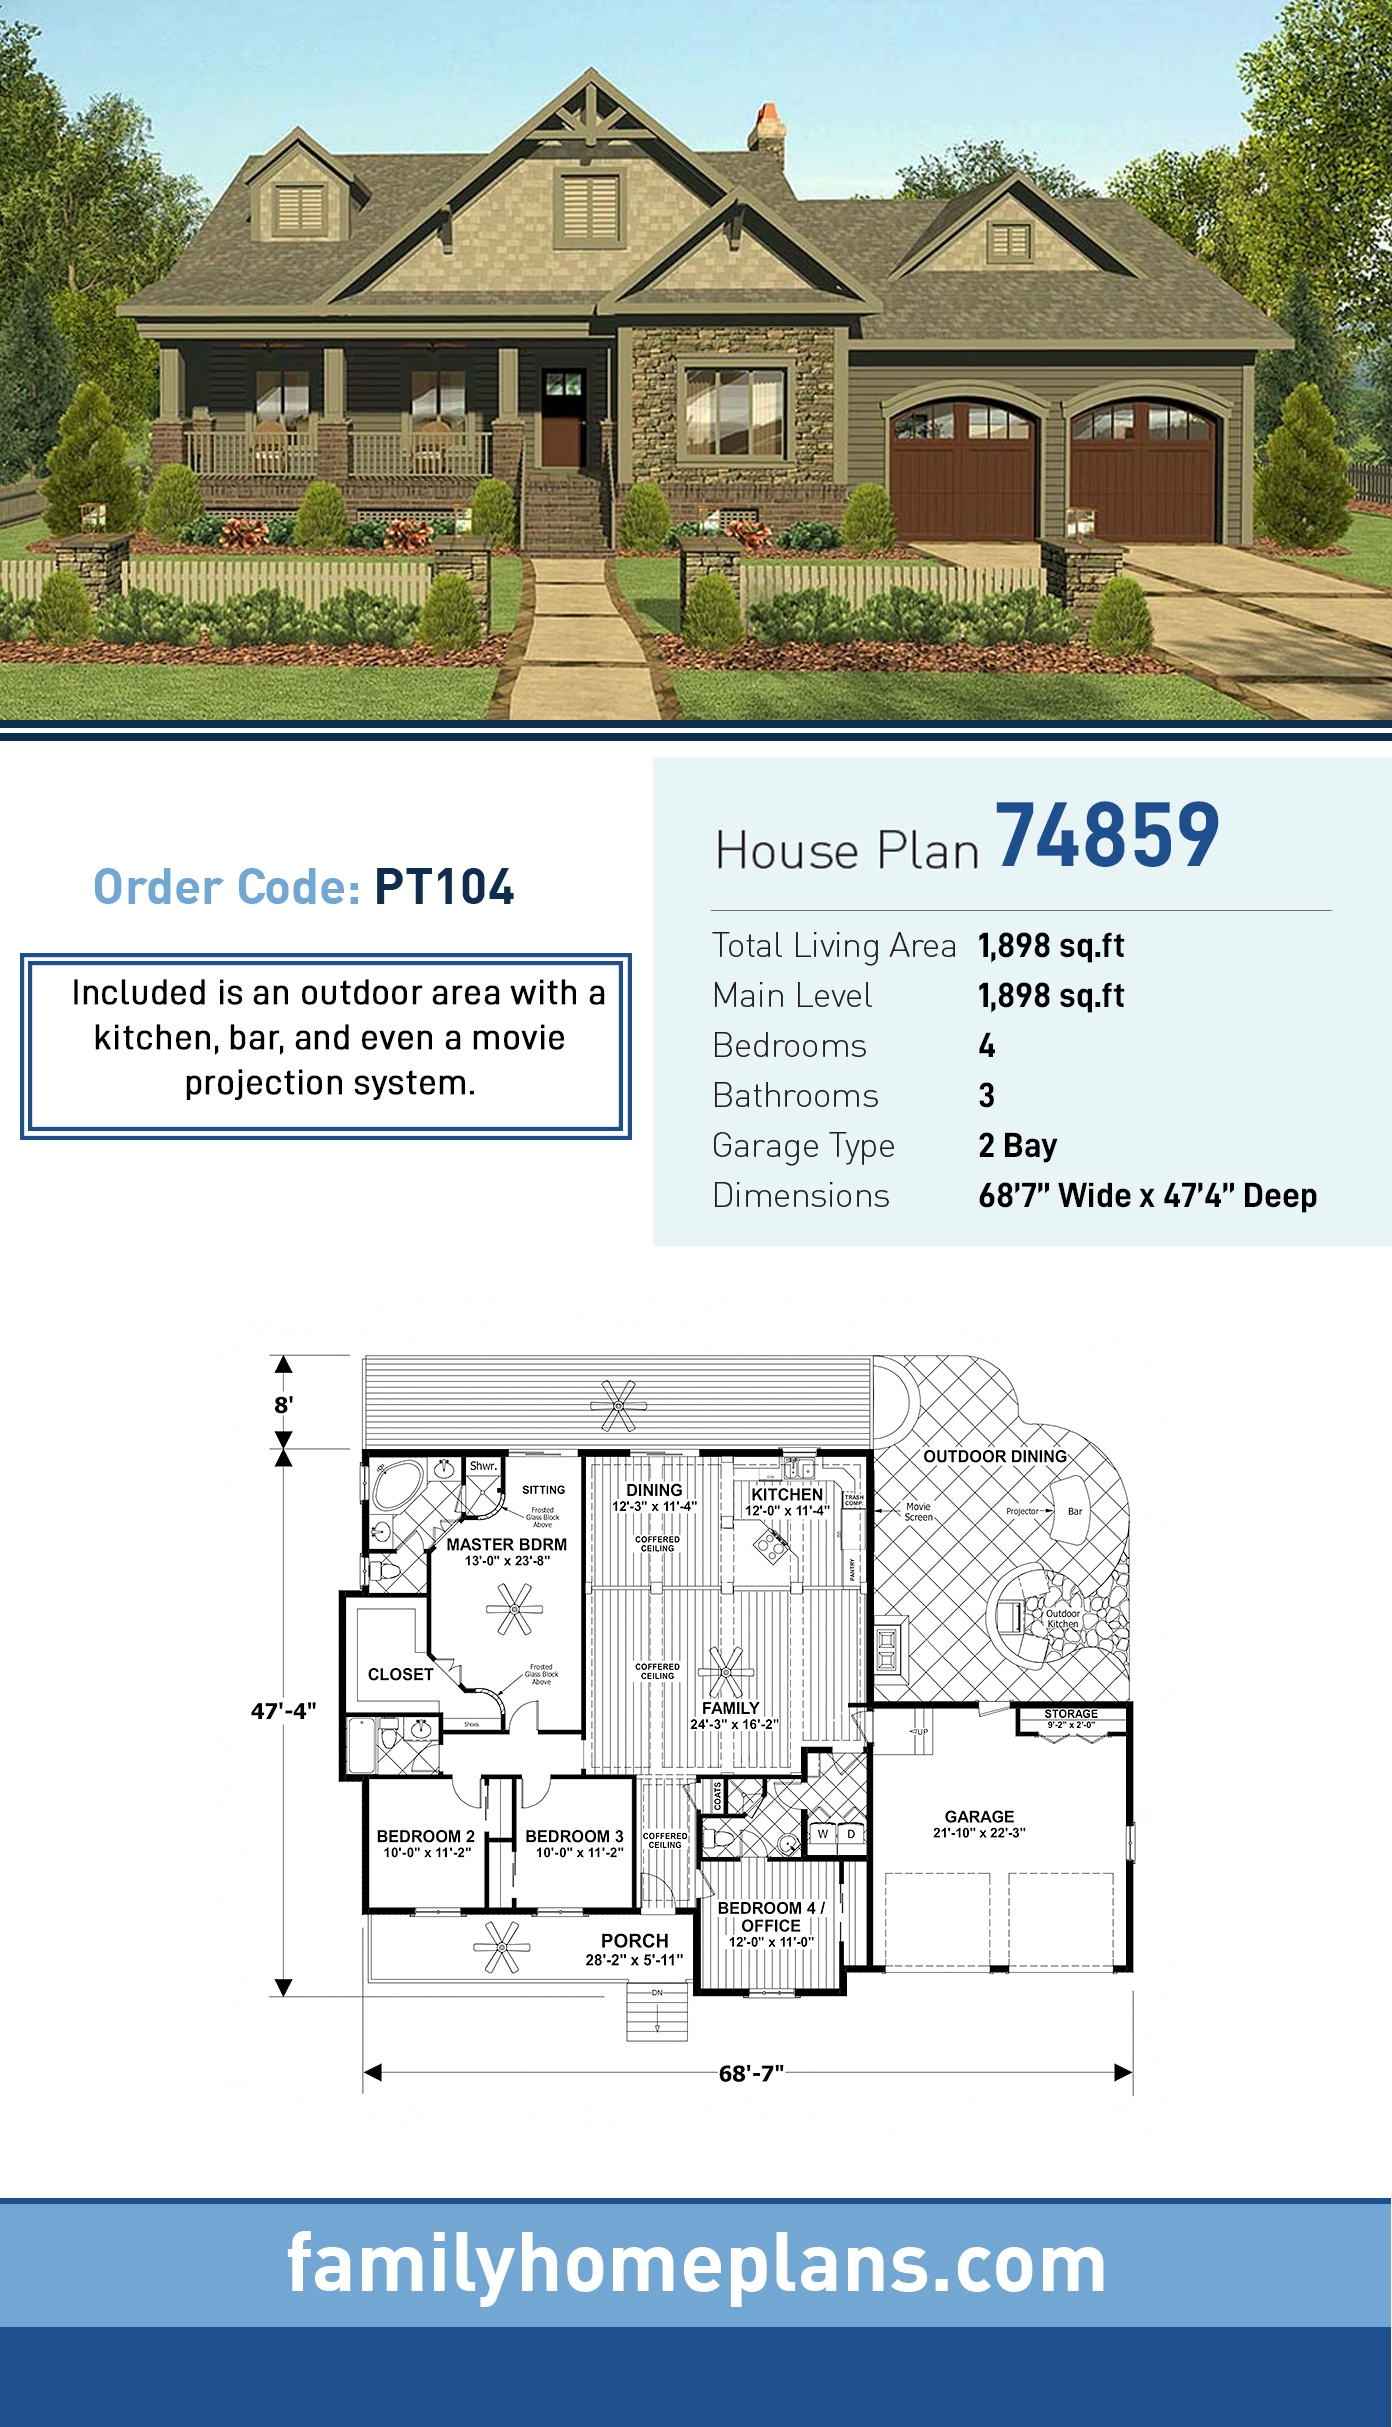 Cottage , Country , Craftsman , Ranch House Plan 74859 with 4 Beds, 3 Baths, 2 Car Garage